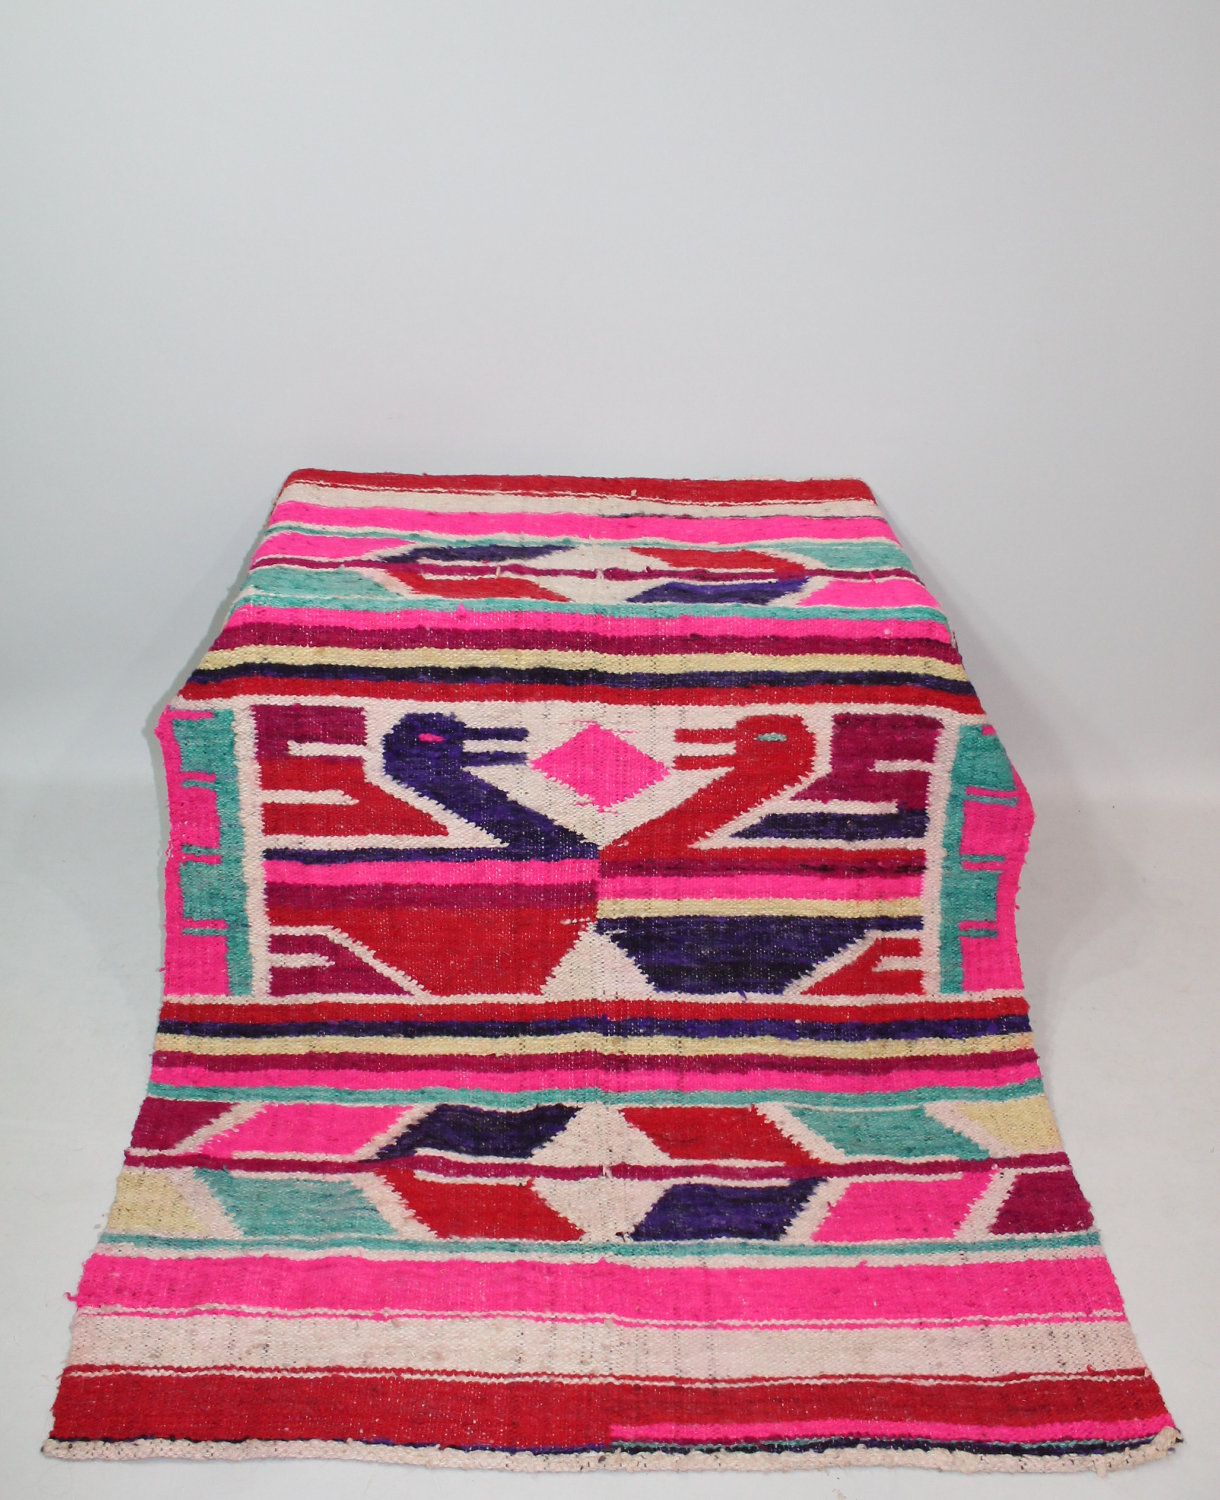 Mexican Rug Images: 60s Mexican Rug Blanket Wool Ducks Pictoral Brightly